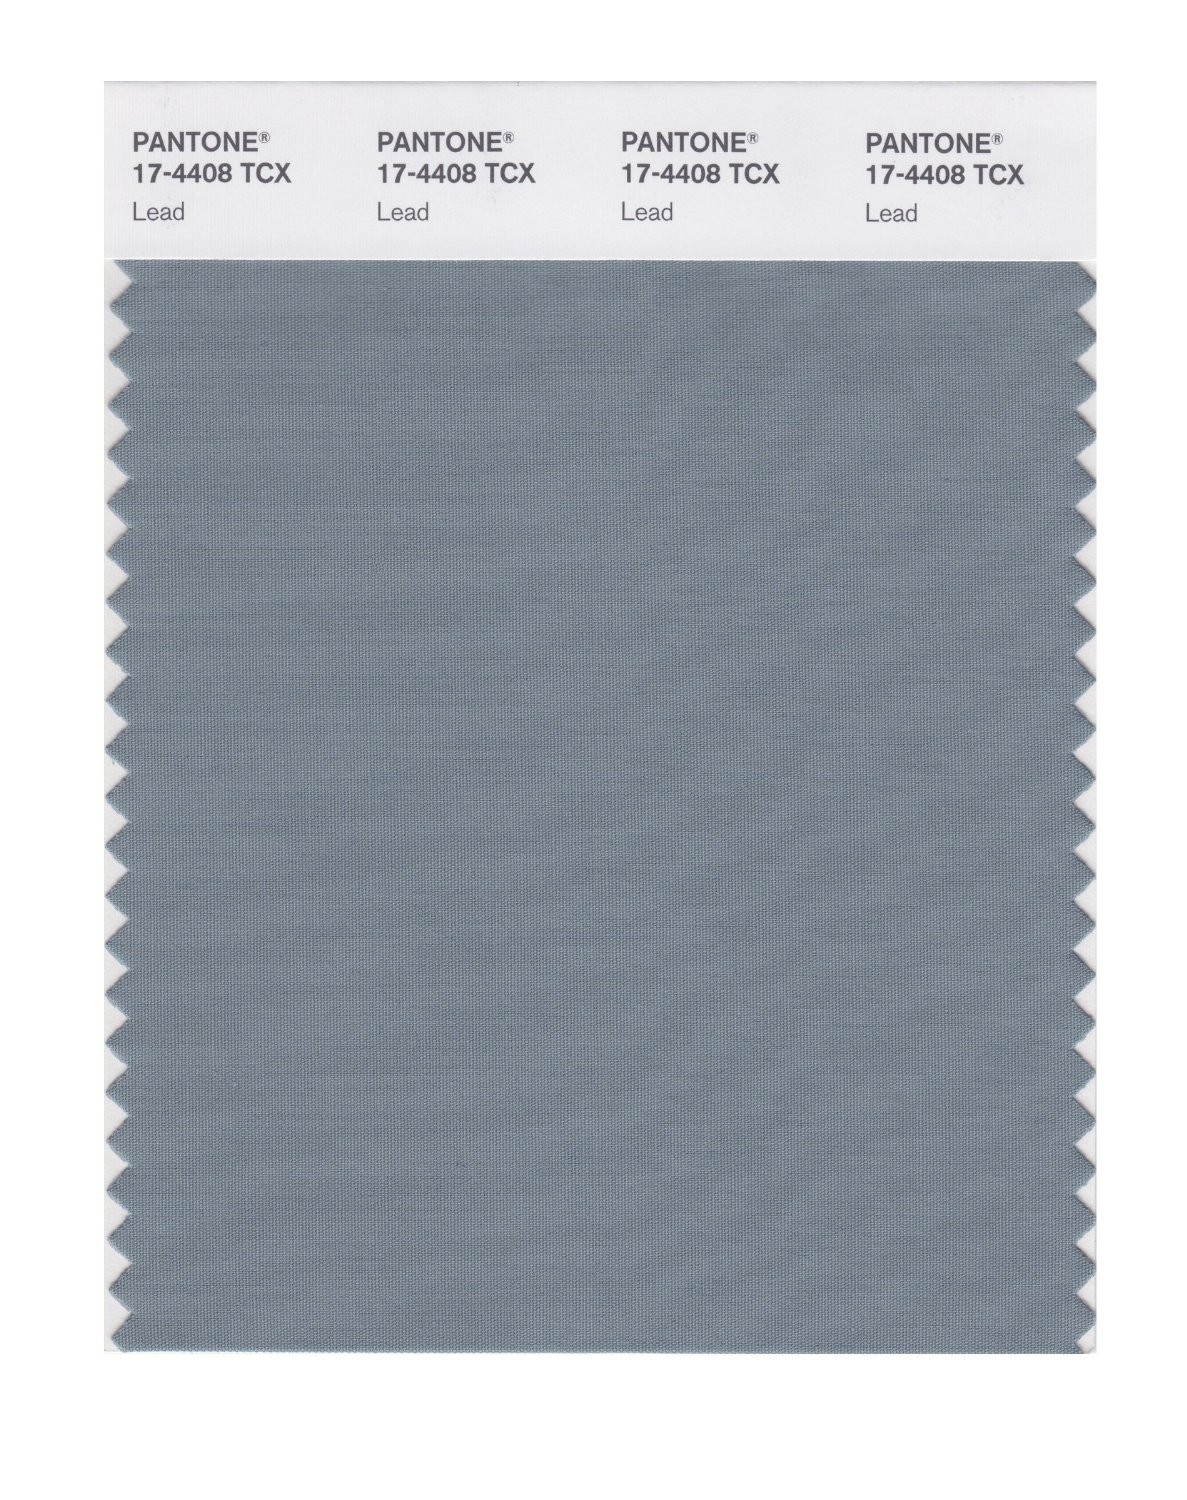 Pantone 17-4408 TCX Swatch Card Lead